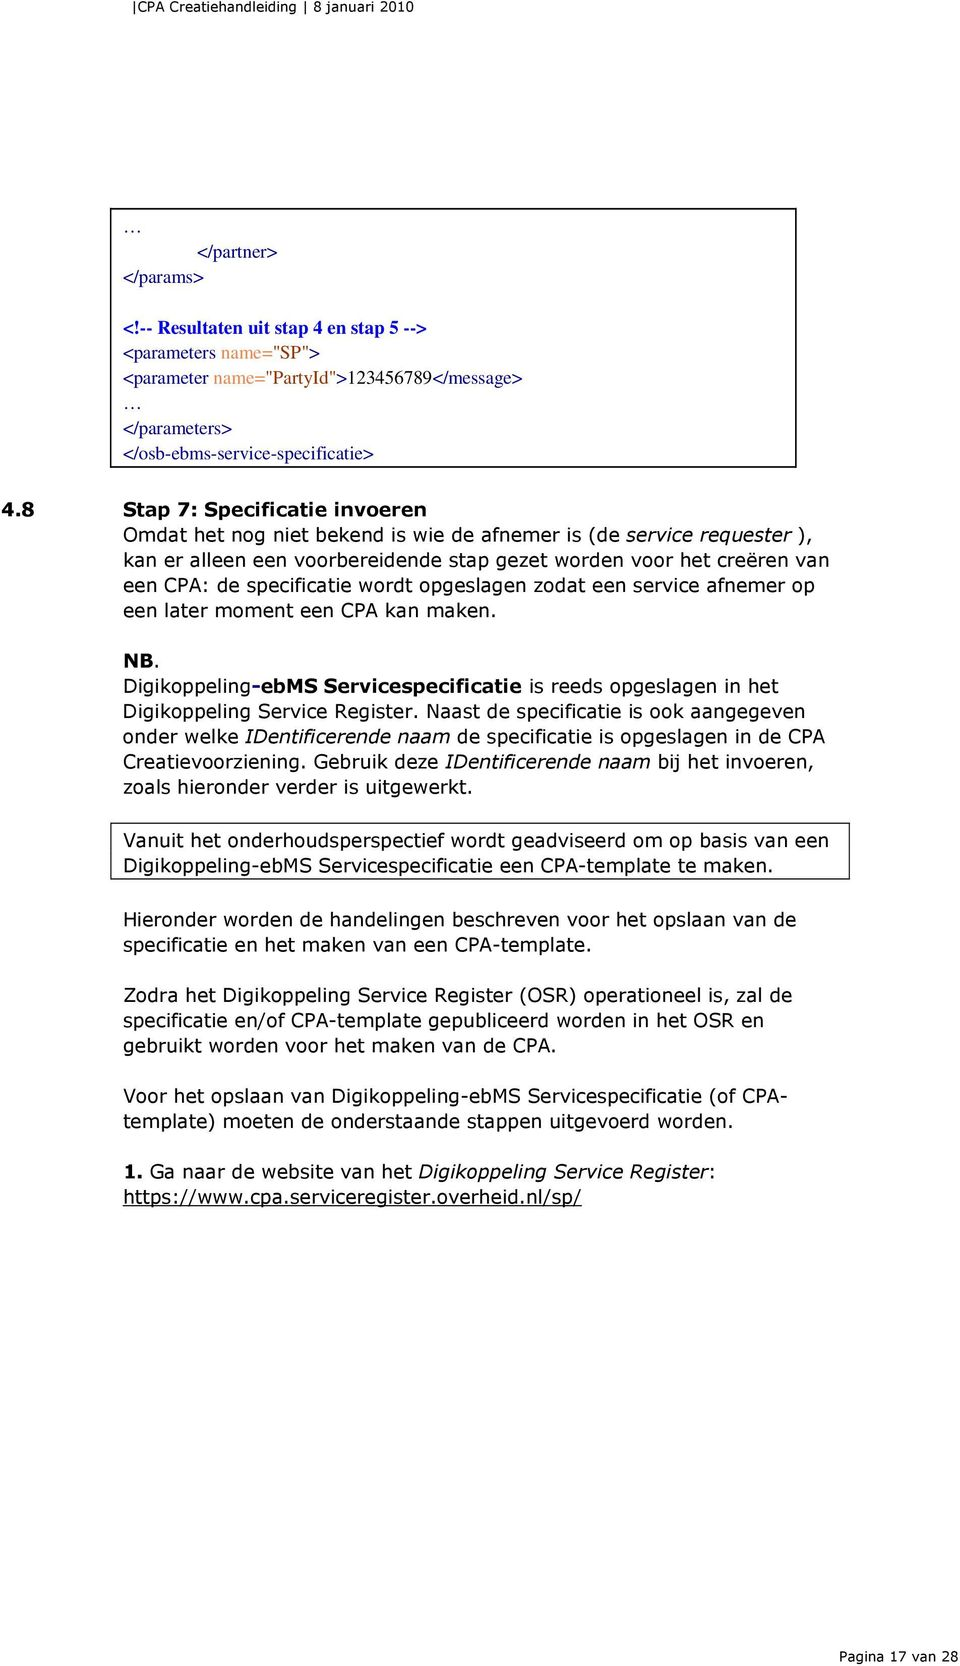 specificatie wordt opgeslagen zodat een service afnemer op een later moment een CPA kan maken. NB. Digikoppeling-ebMS Servicespecificatie is reeds opgeslagen in het Digikoppeling Service Register.